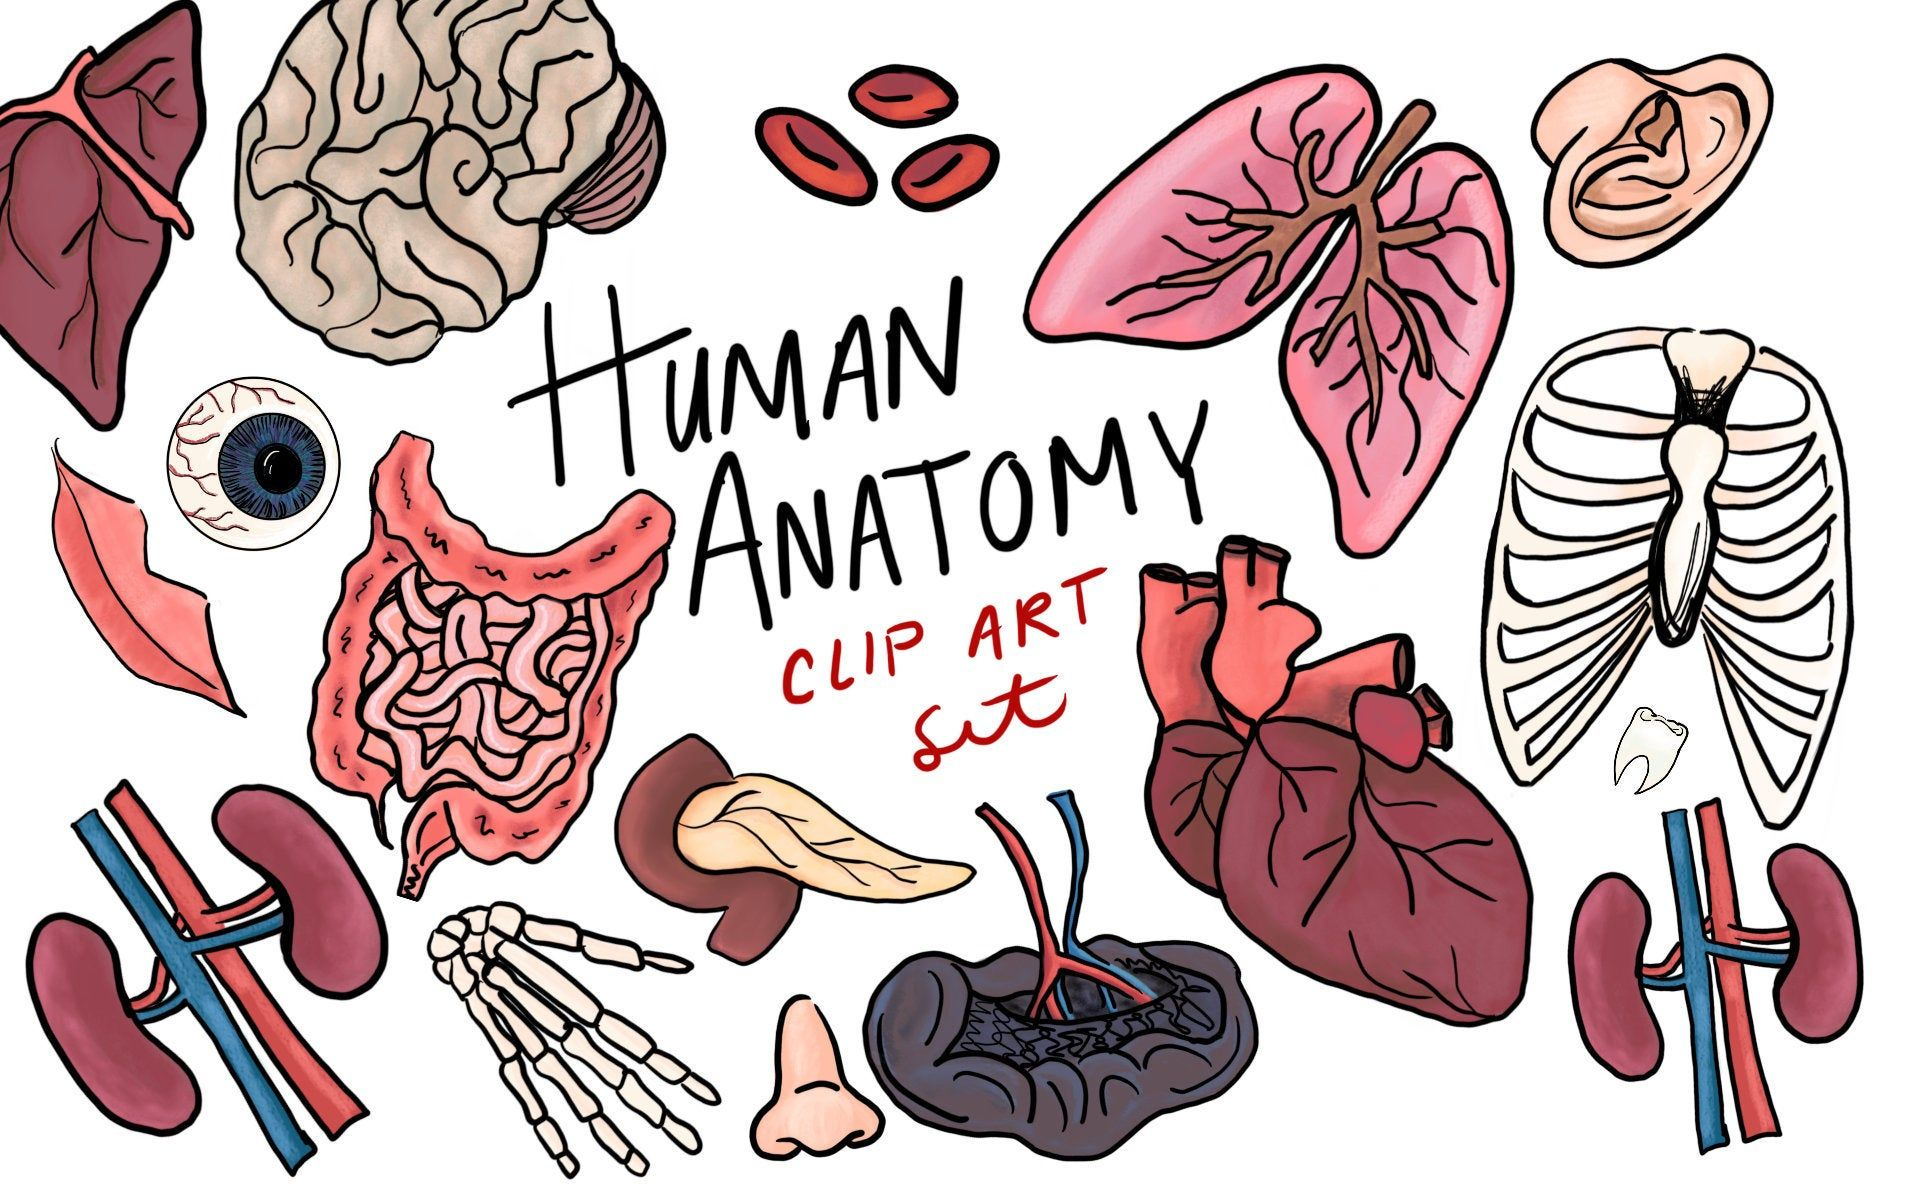 Human Anatomy Clip Art, hand drawn clip art, commercial use.